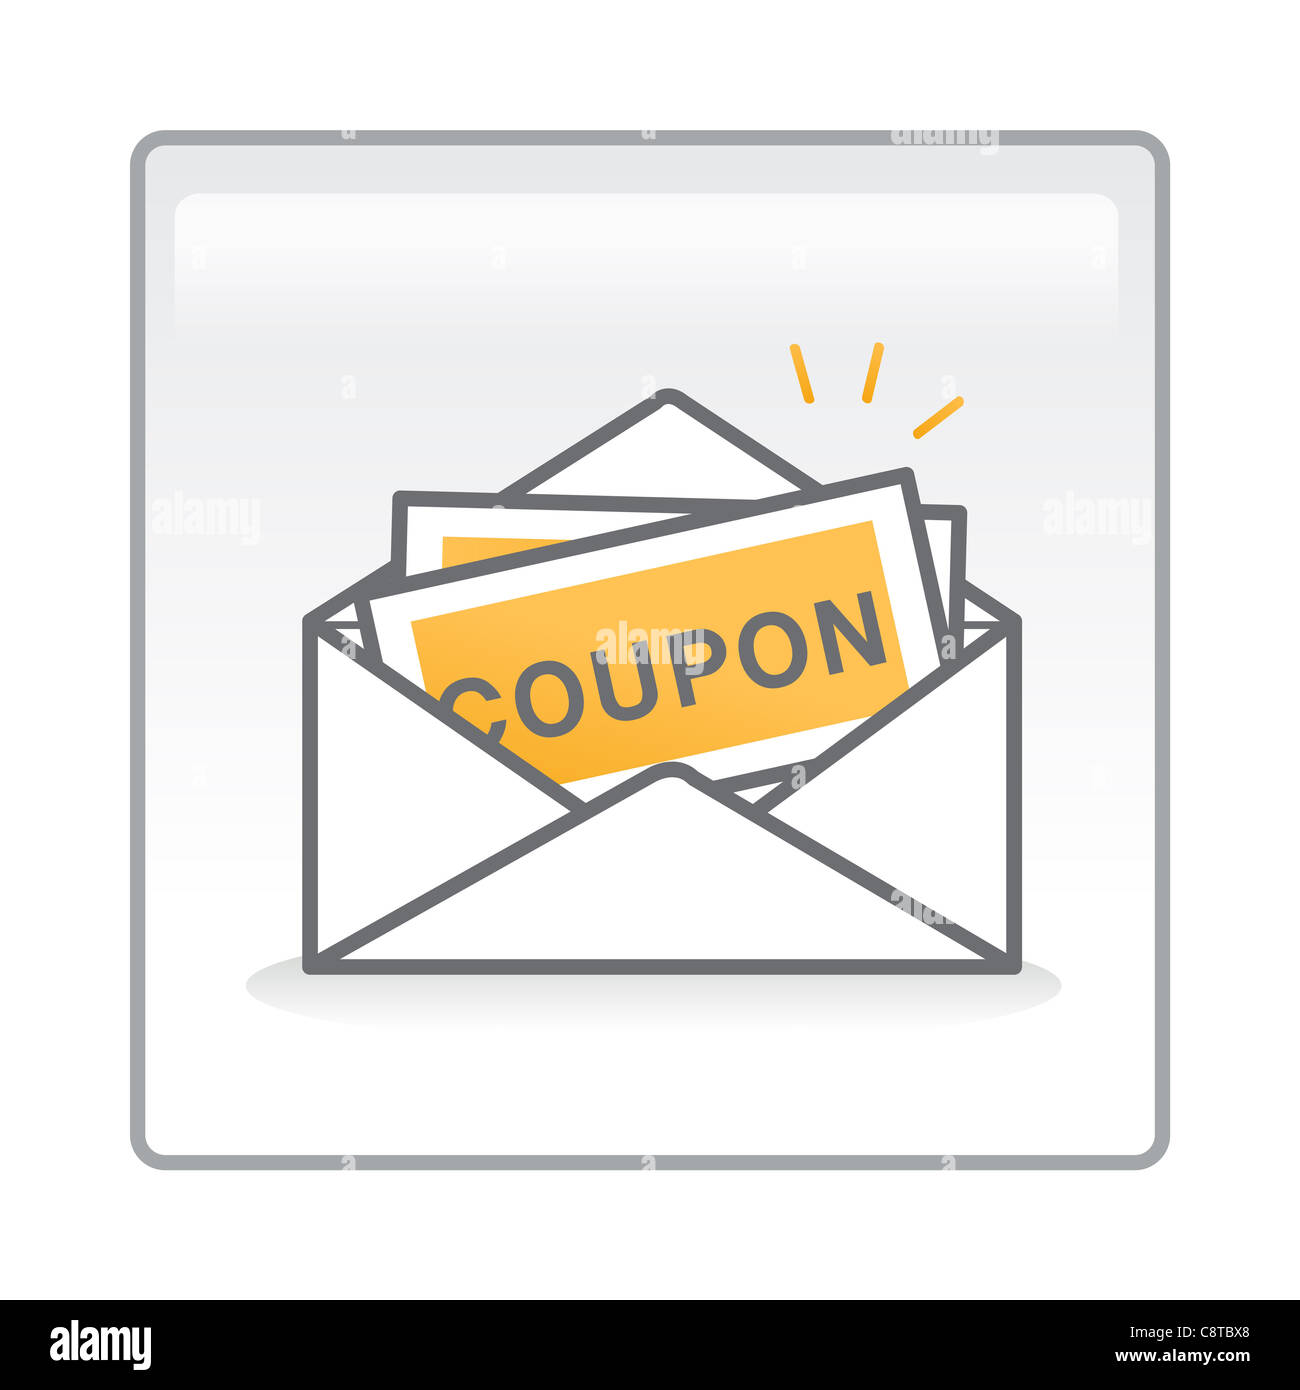 Illustrazione di coupon in una busta Immagini Stock